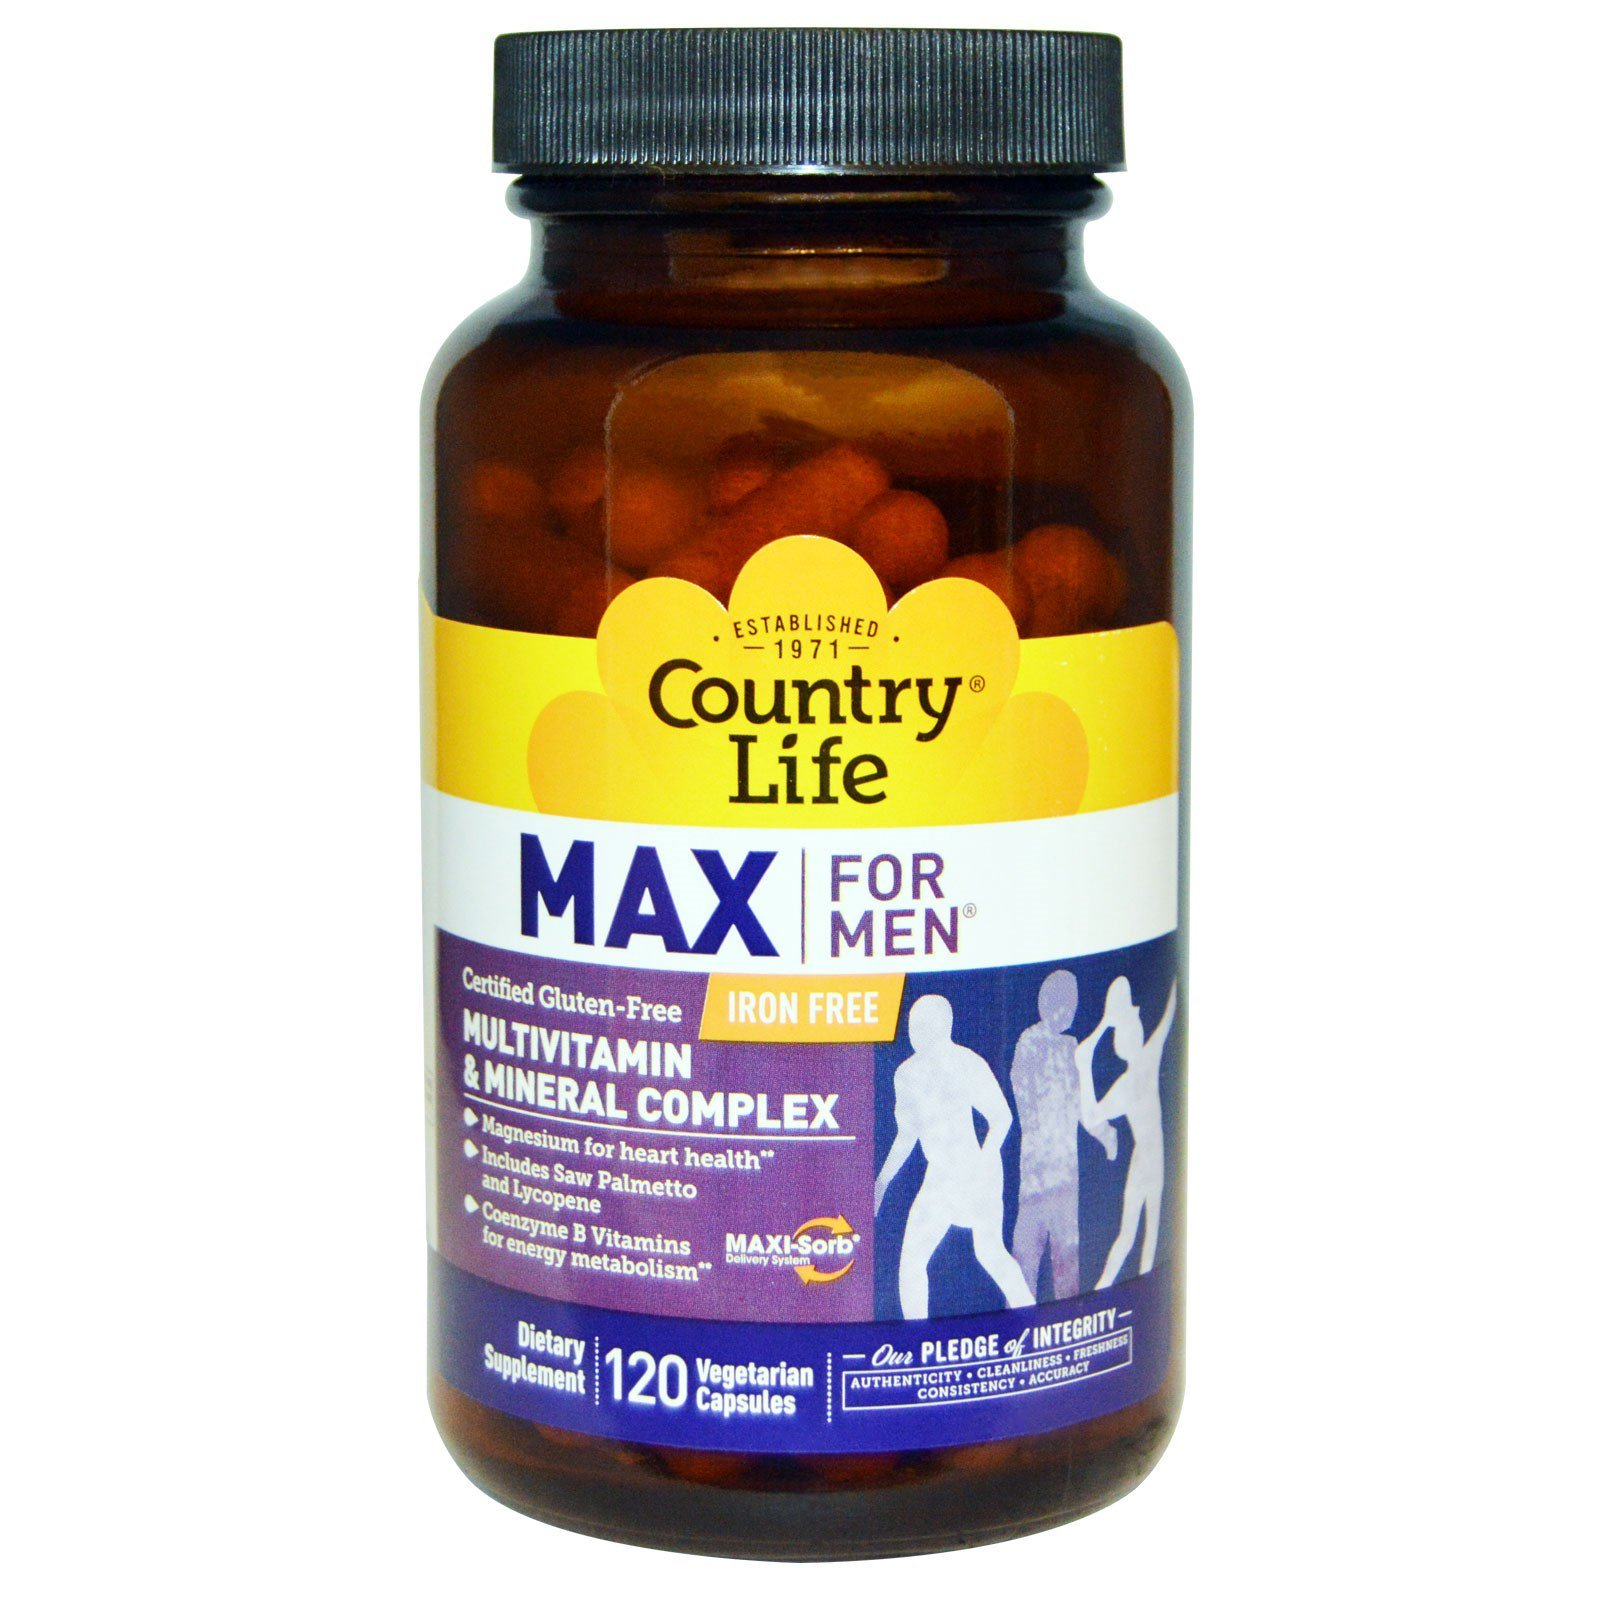 Country Life Max for Men - Multivitamin and Mineral Complex, Iron-free - 120 Vegetarian Capsules